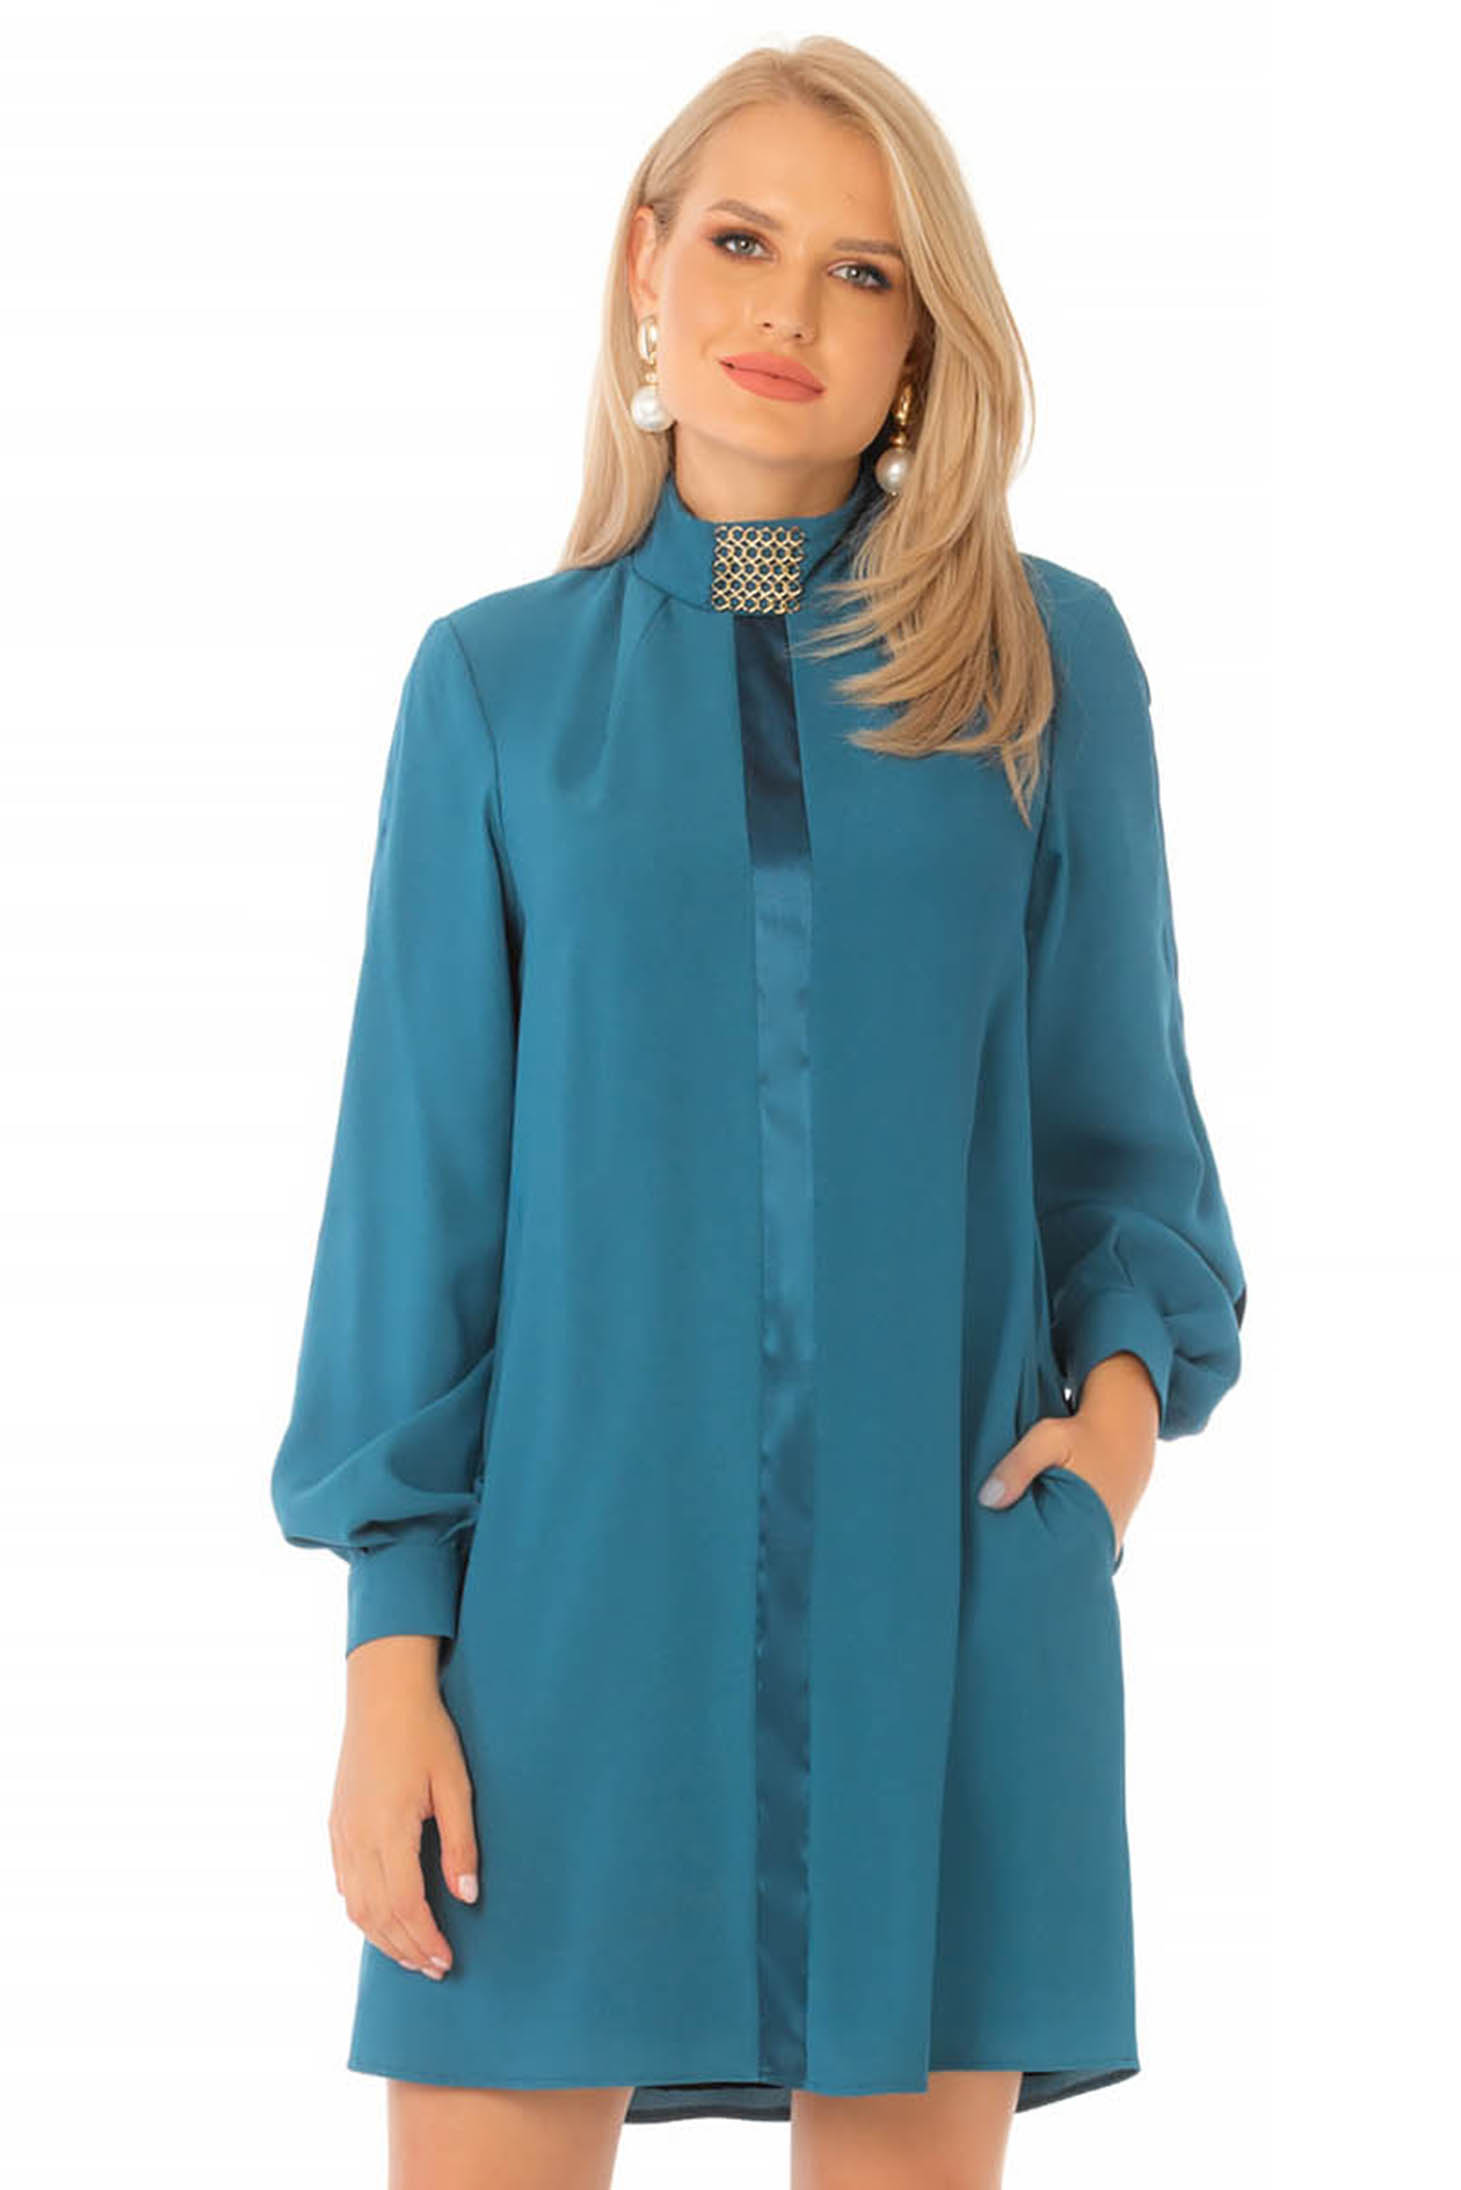 Short cut daily blue dress from veil fabric a-line turtleneck long sleeved